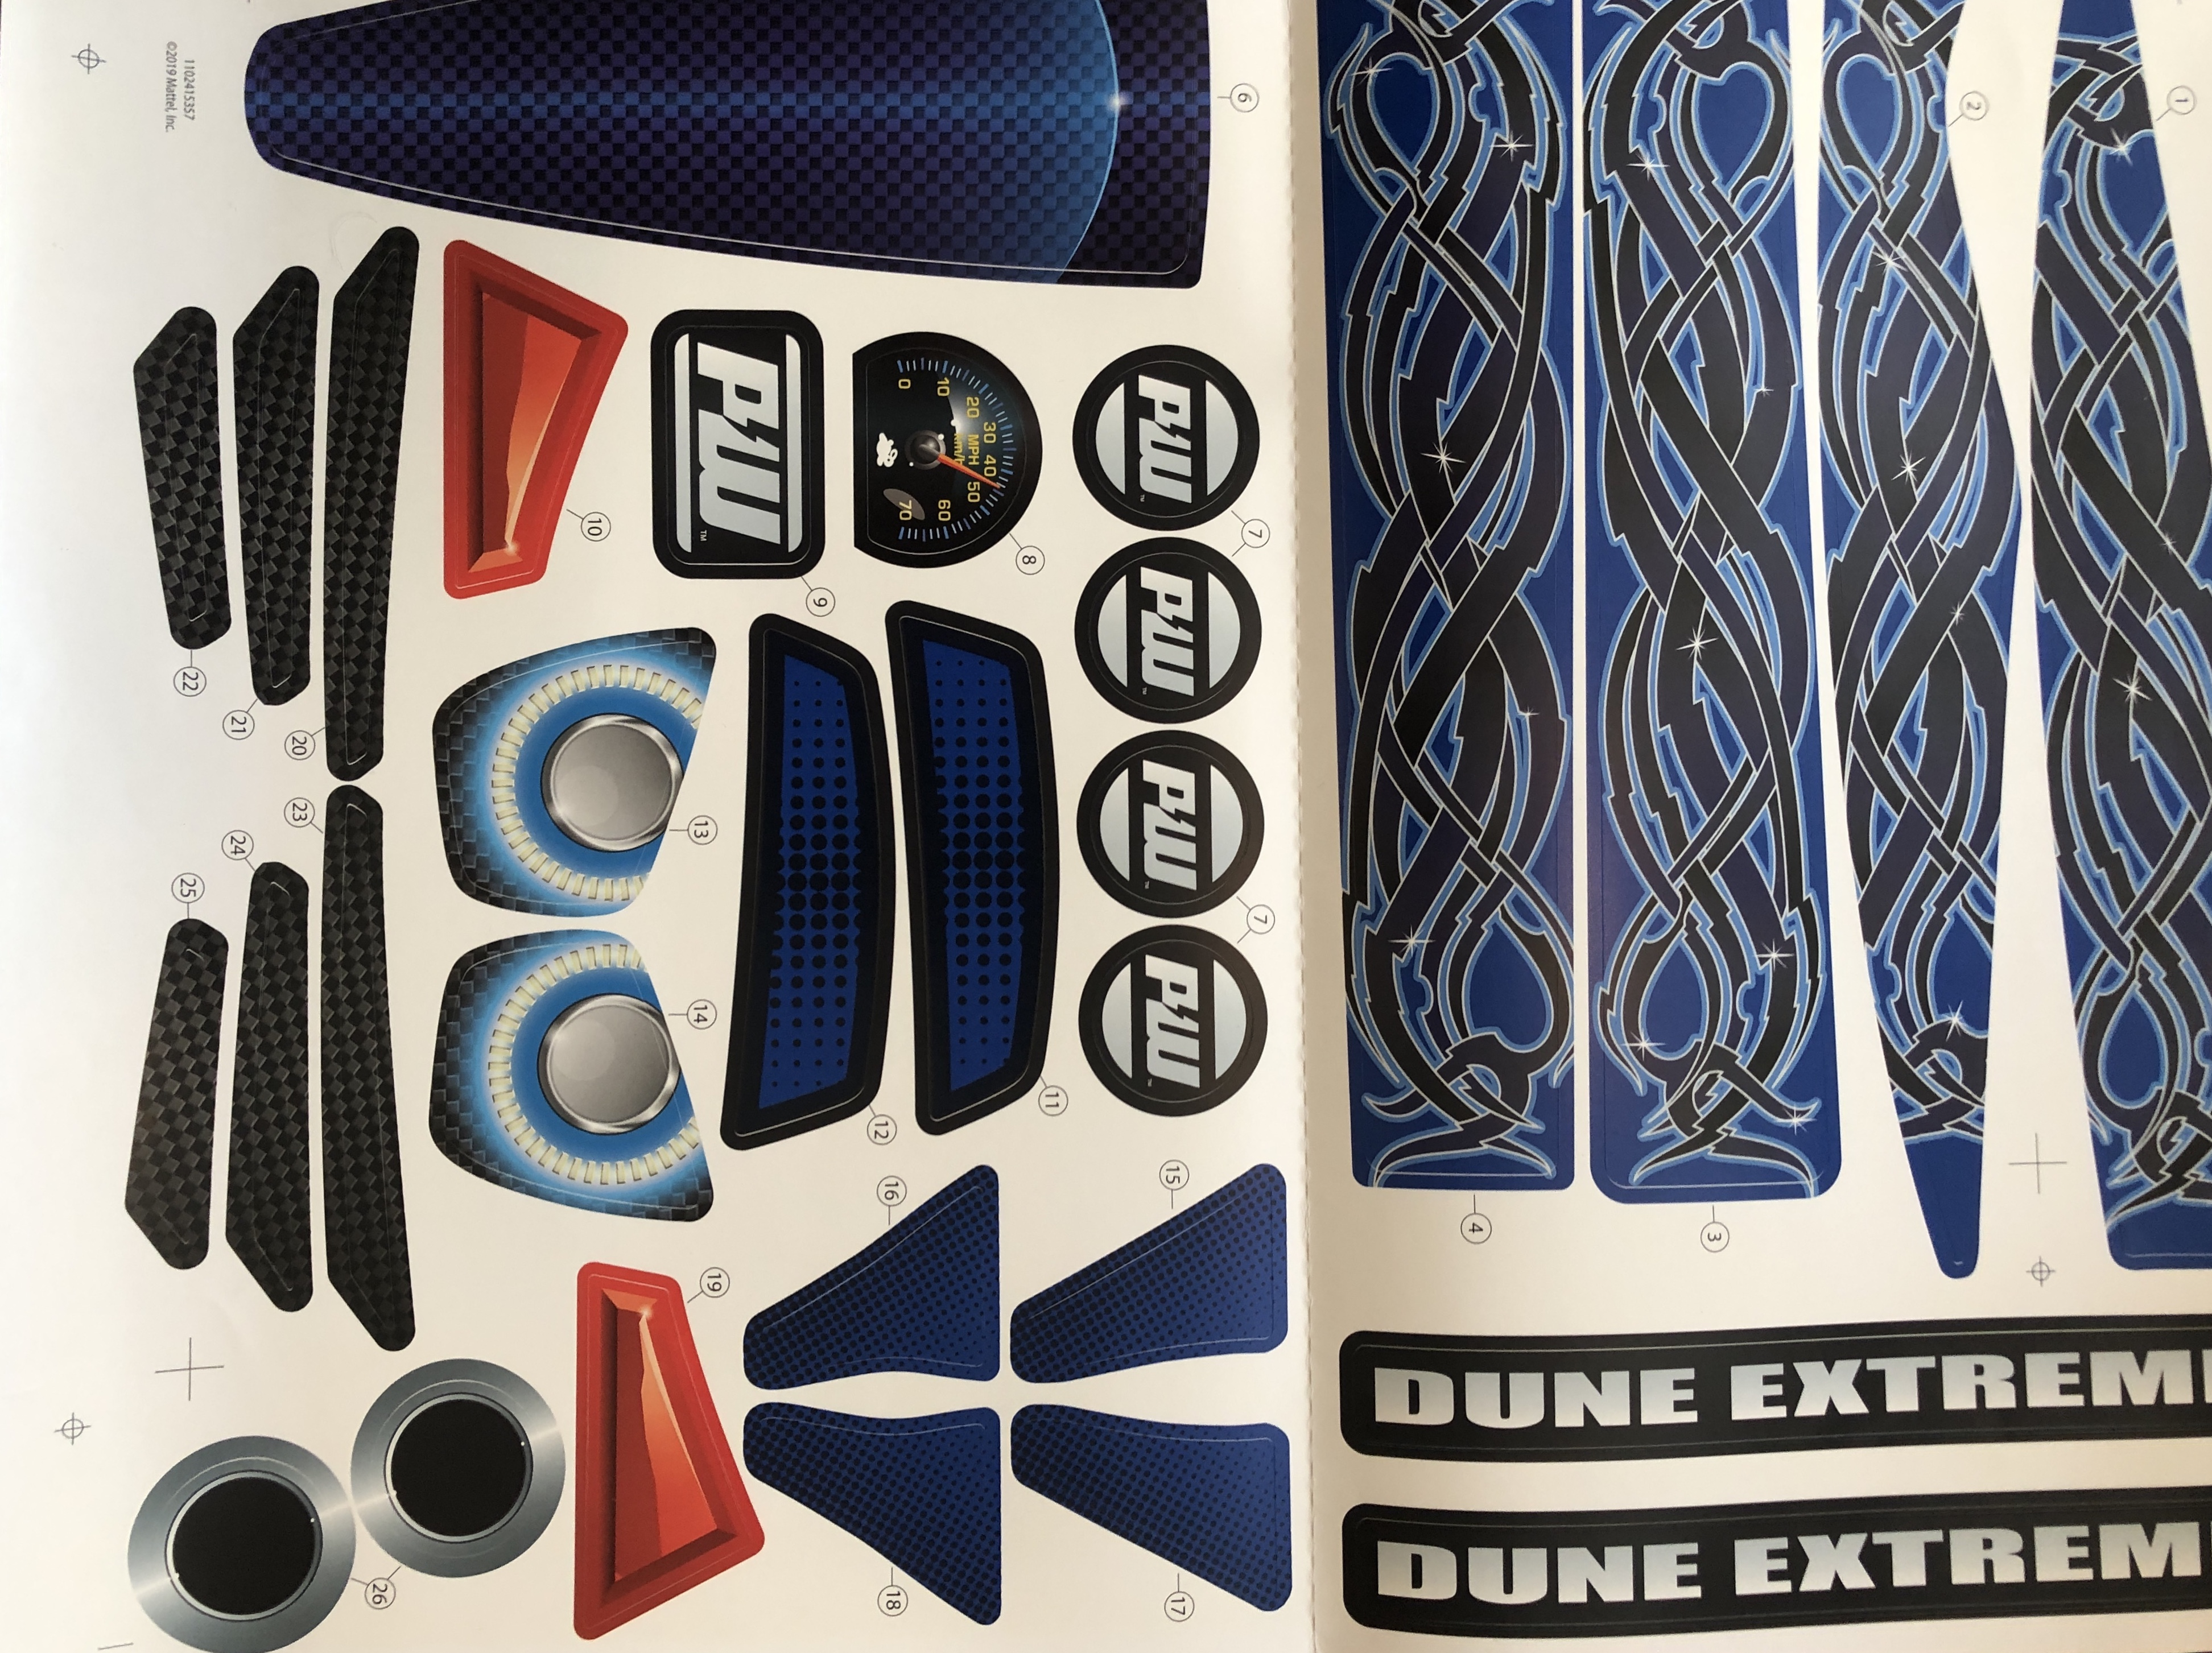 Decal for Dune Racer Extreme (Model GTR90)